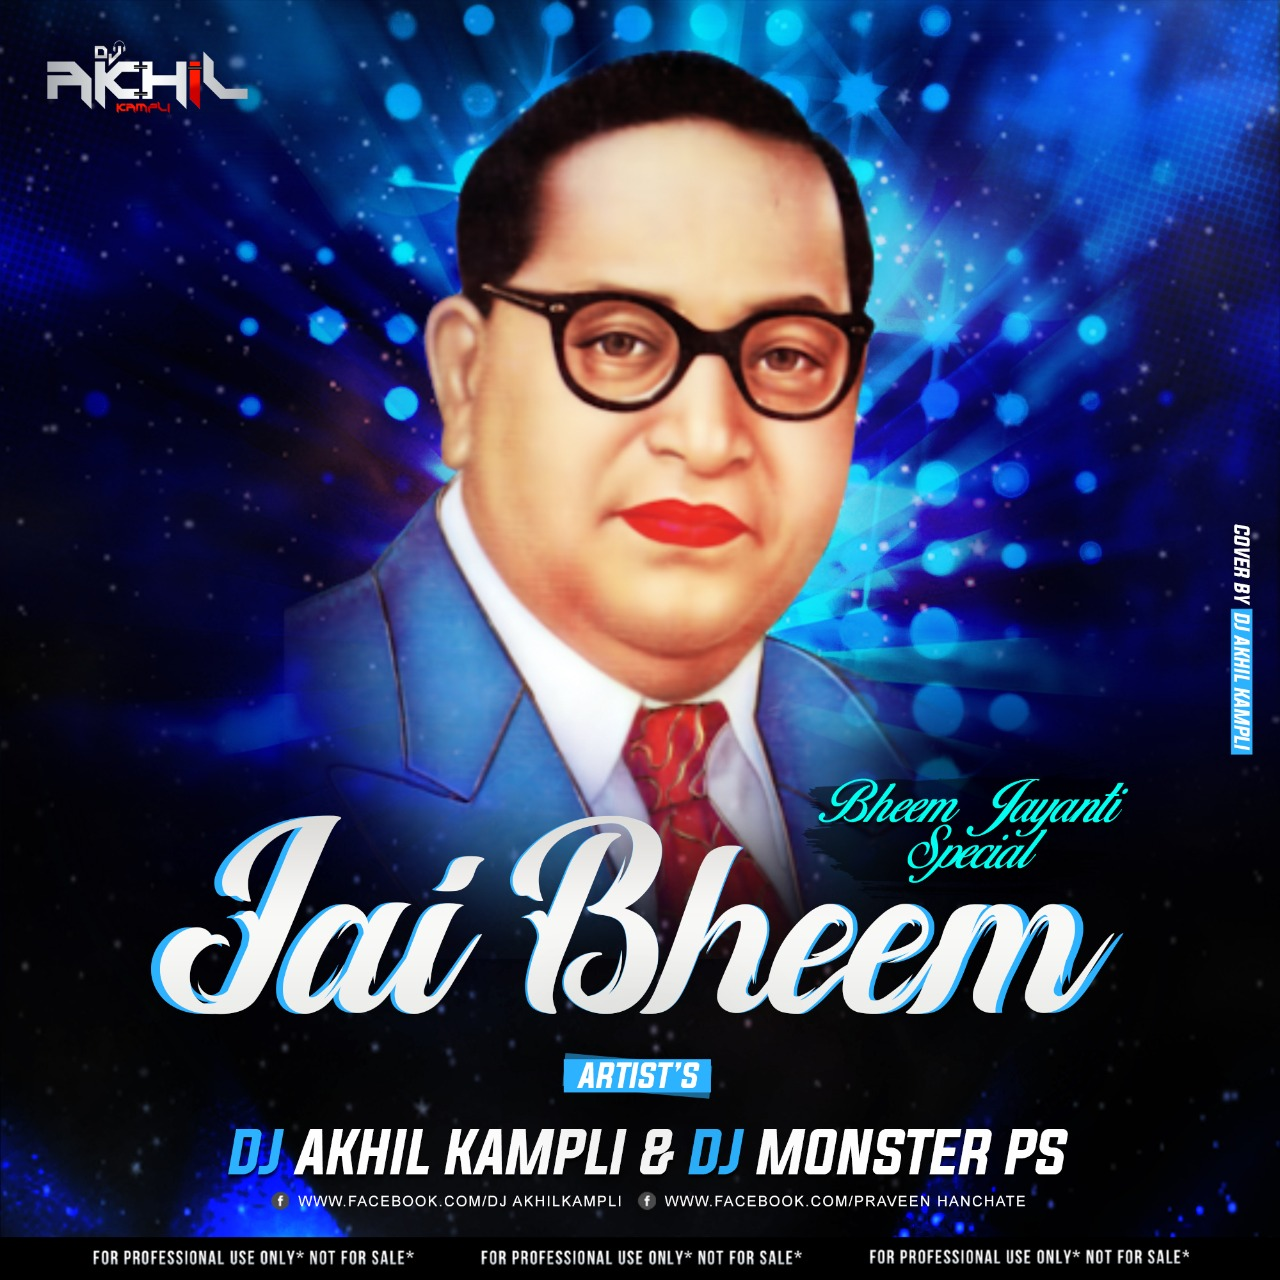 Jai Bheem 2K21 Mix Dj Akhil Kampli Dj Monster PS